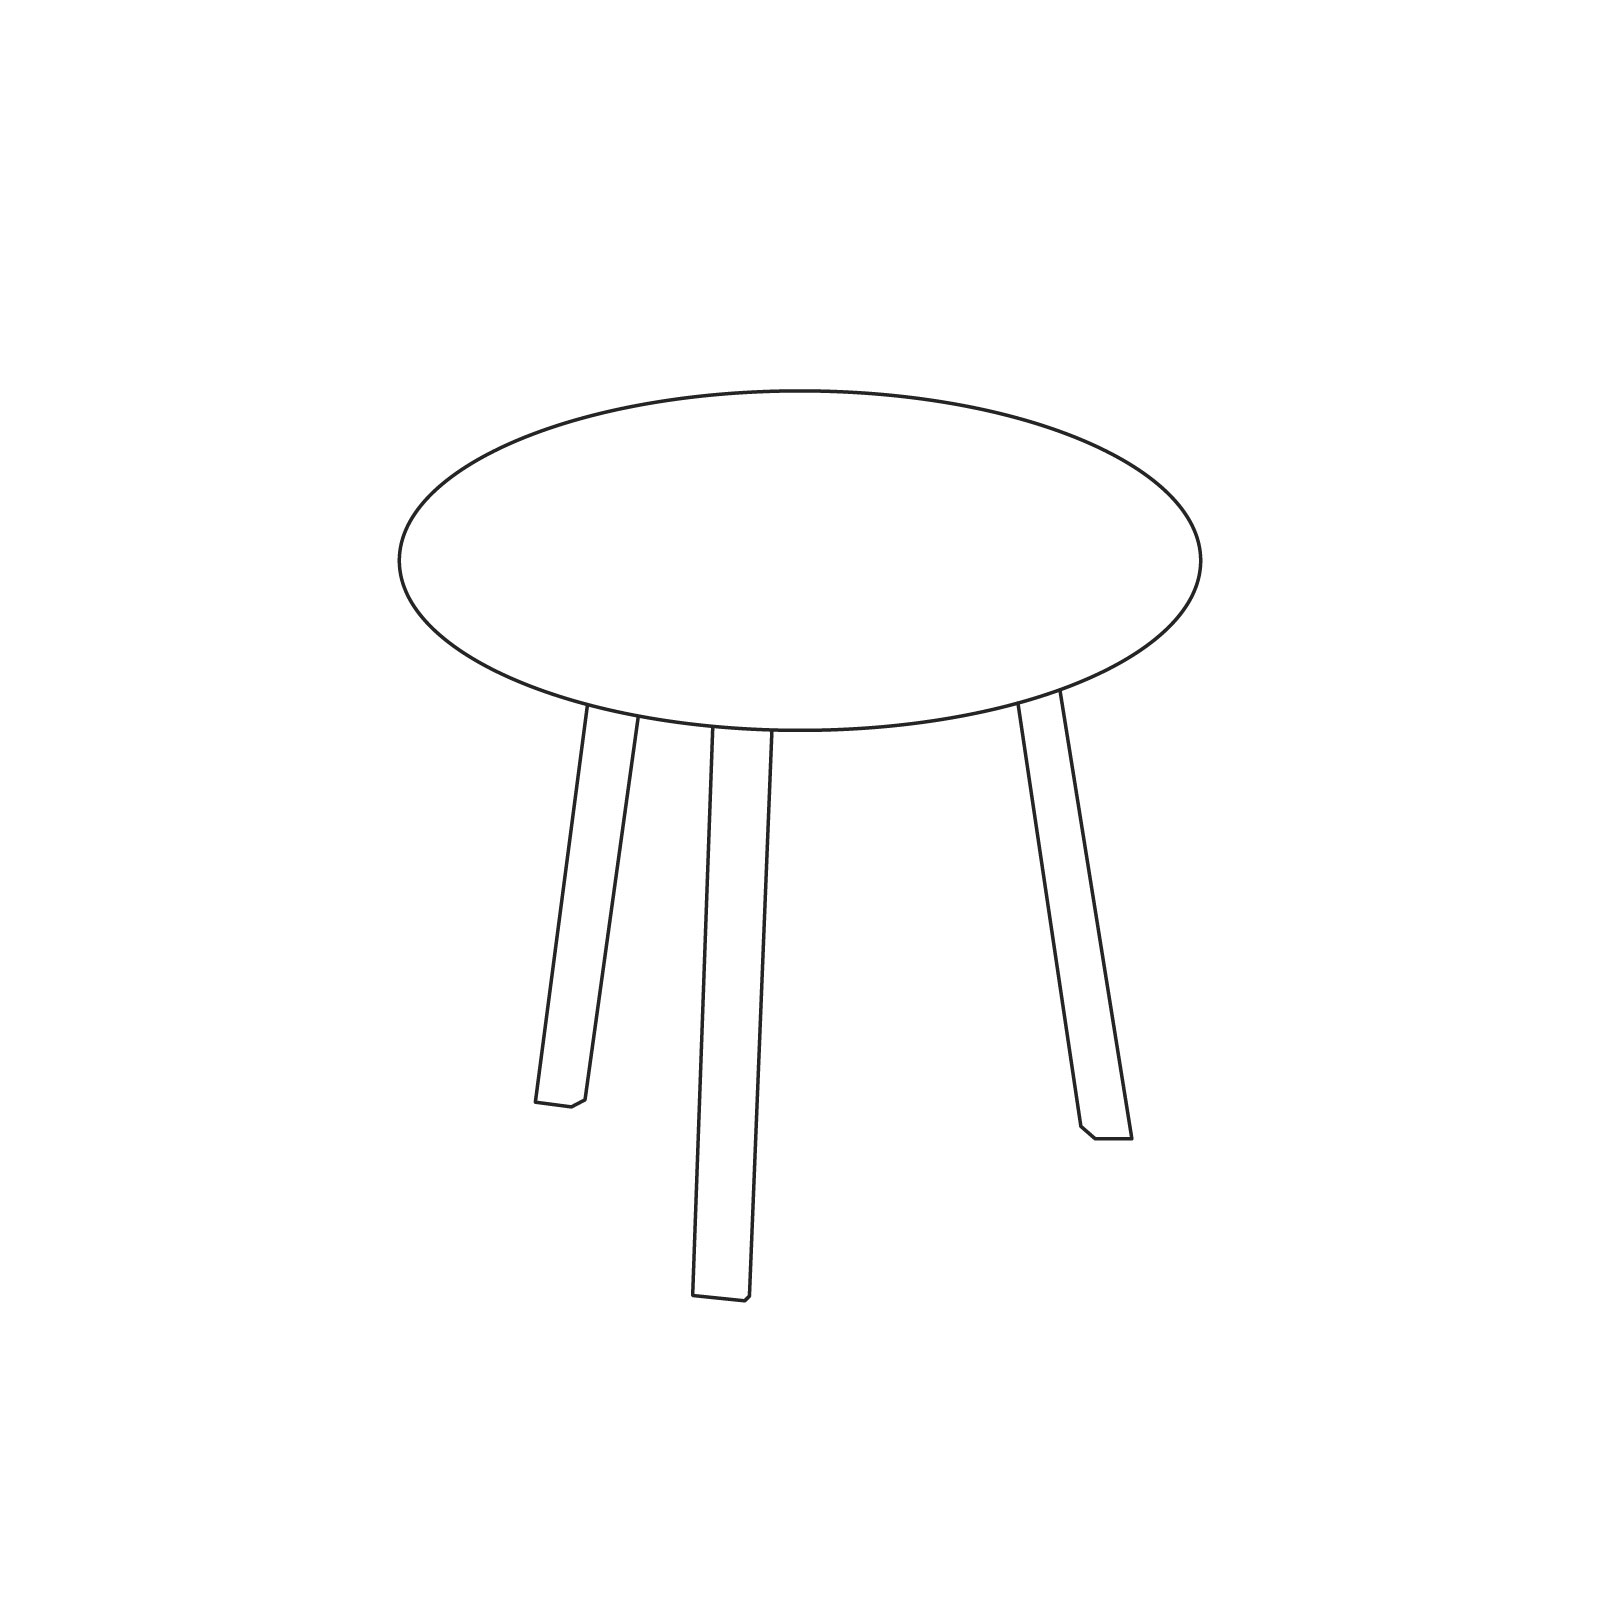 A line drawing of Bella Coffee Table–High.